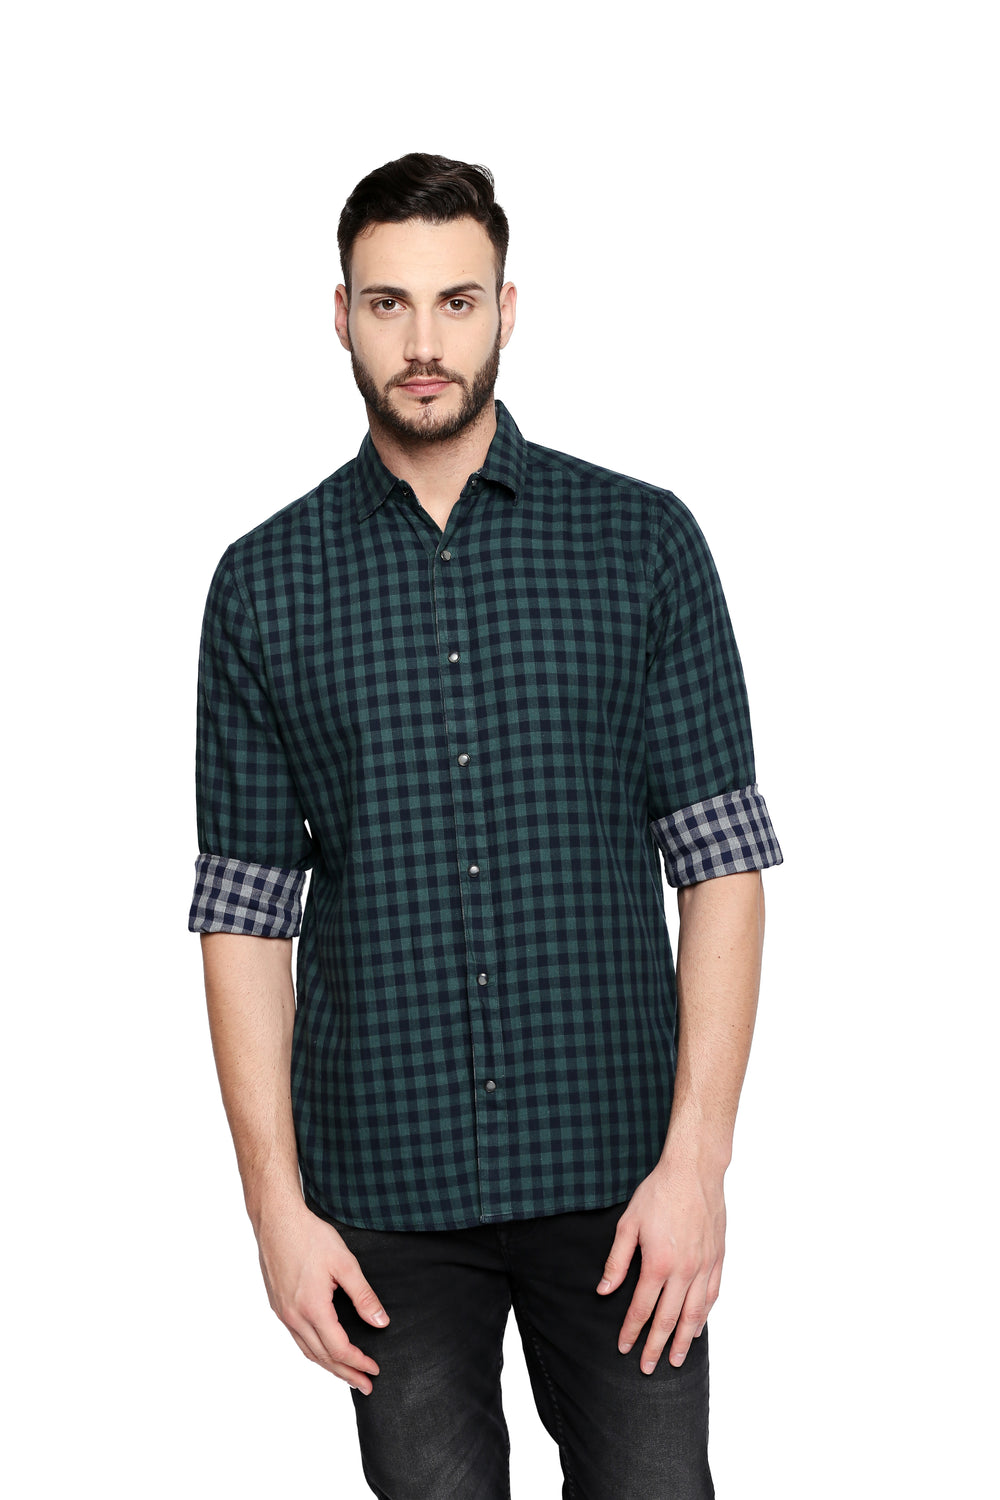 Disrupt Green Cotton Full Sleeve Shirt